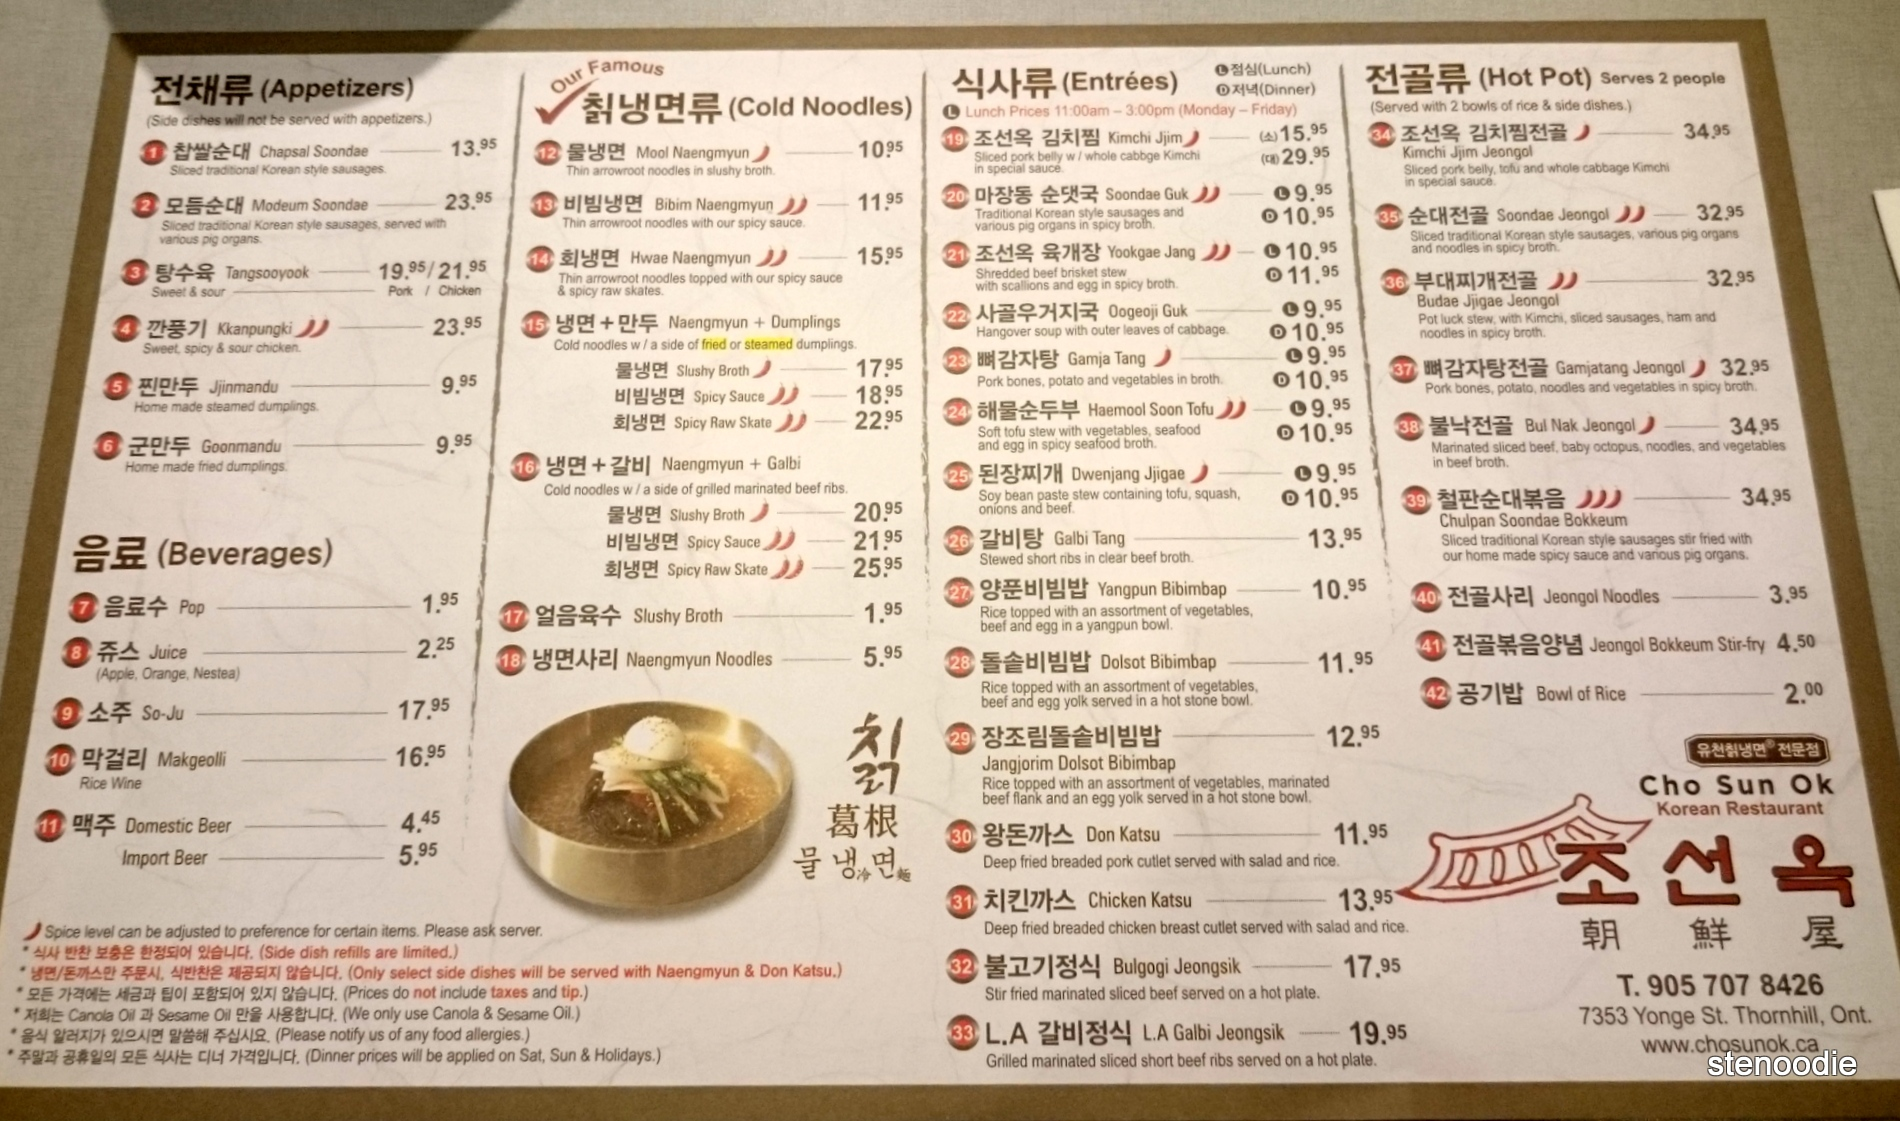 Cho Sun Ok menu and prices